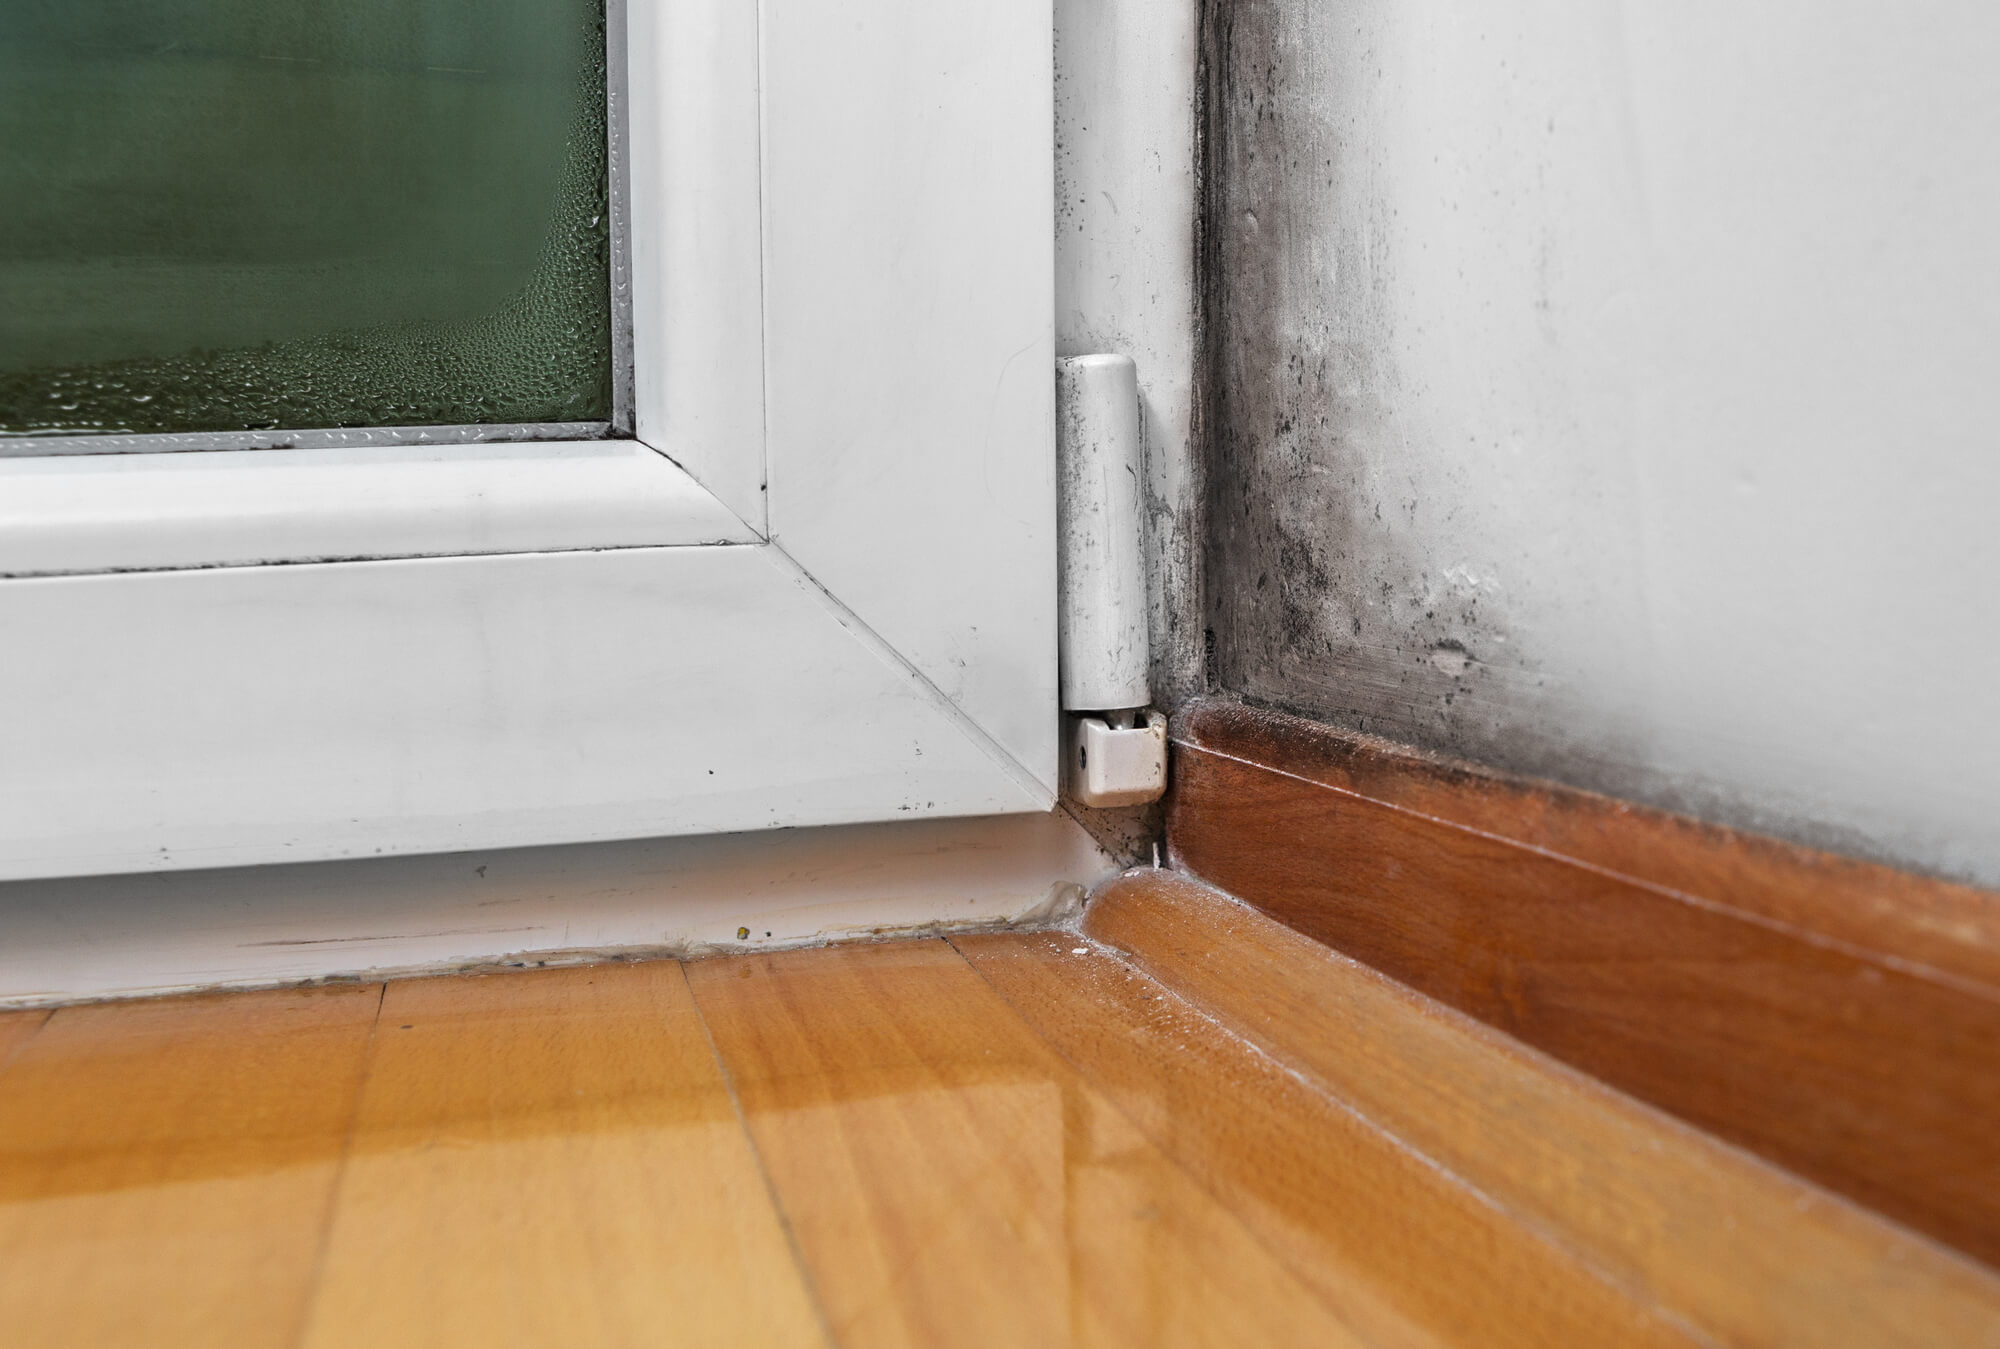 Water Damage to a House